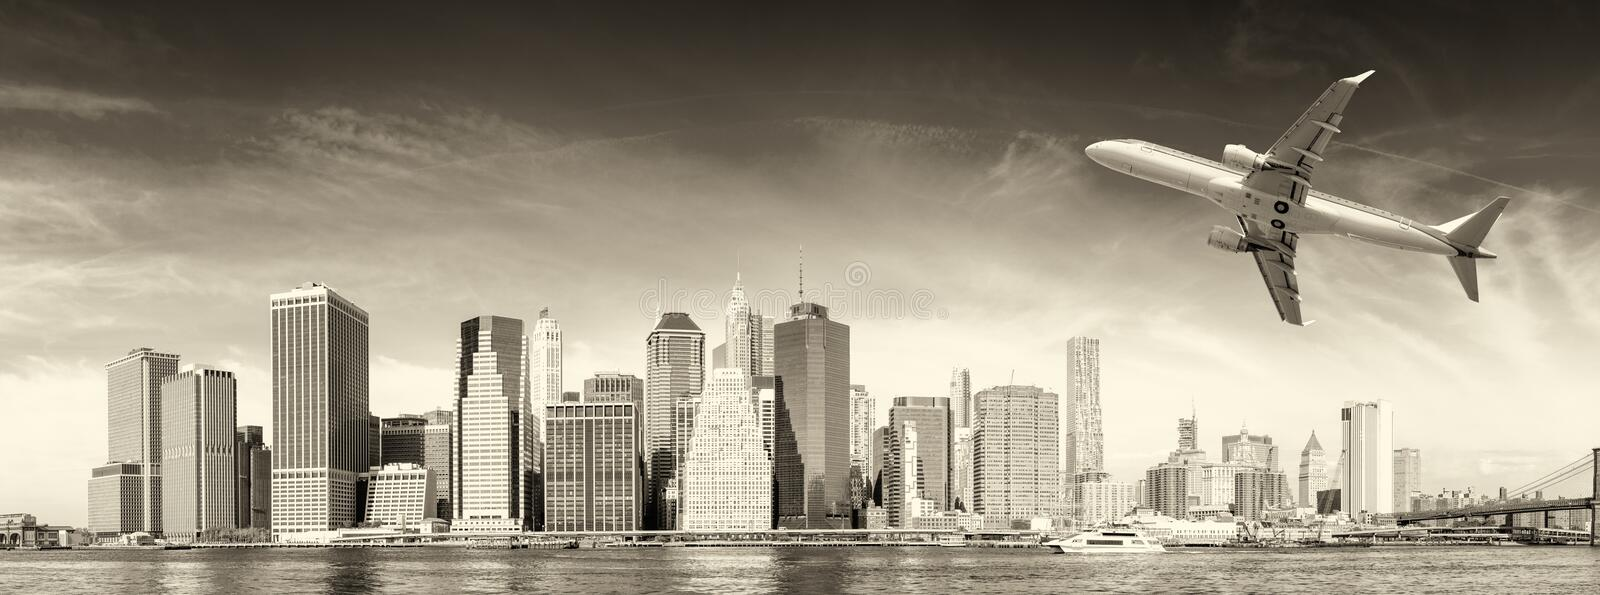 Black and white view of airplane over New York City. Tourism con royalty free stock image